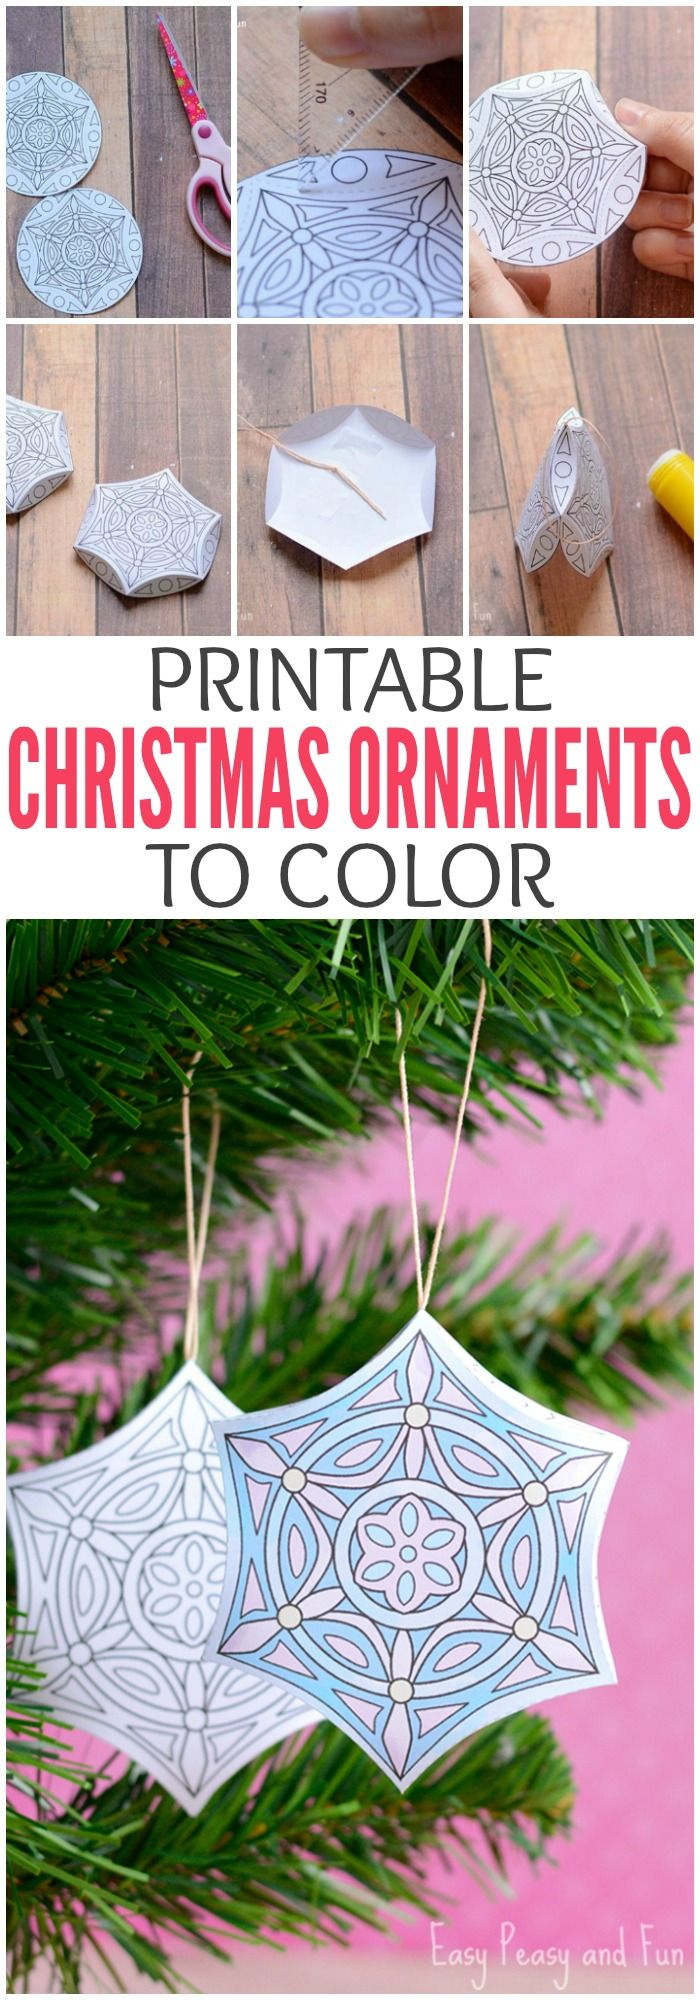 Printable Christmas Ornaments to Color for Adults and Older Kids